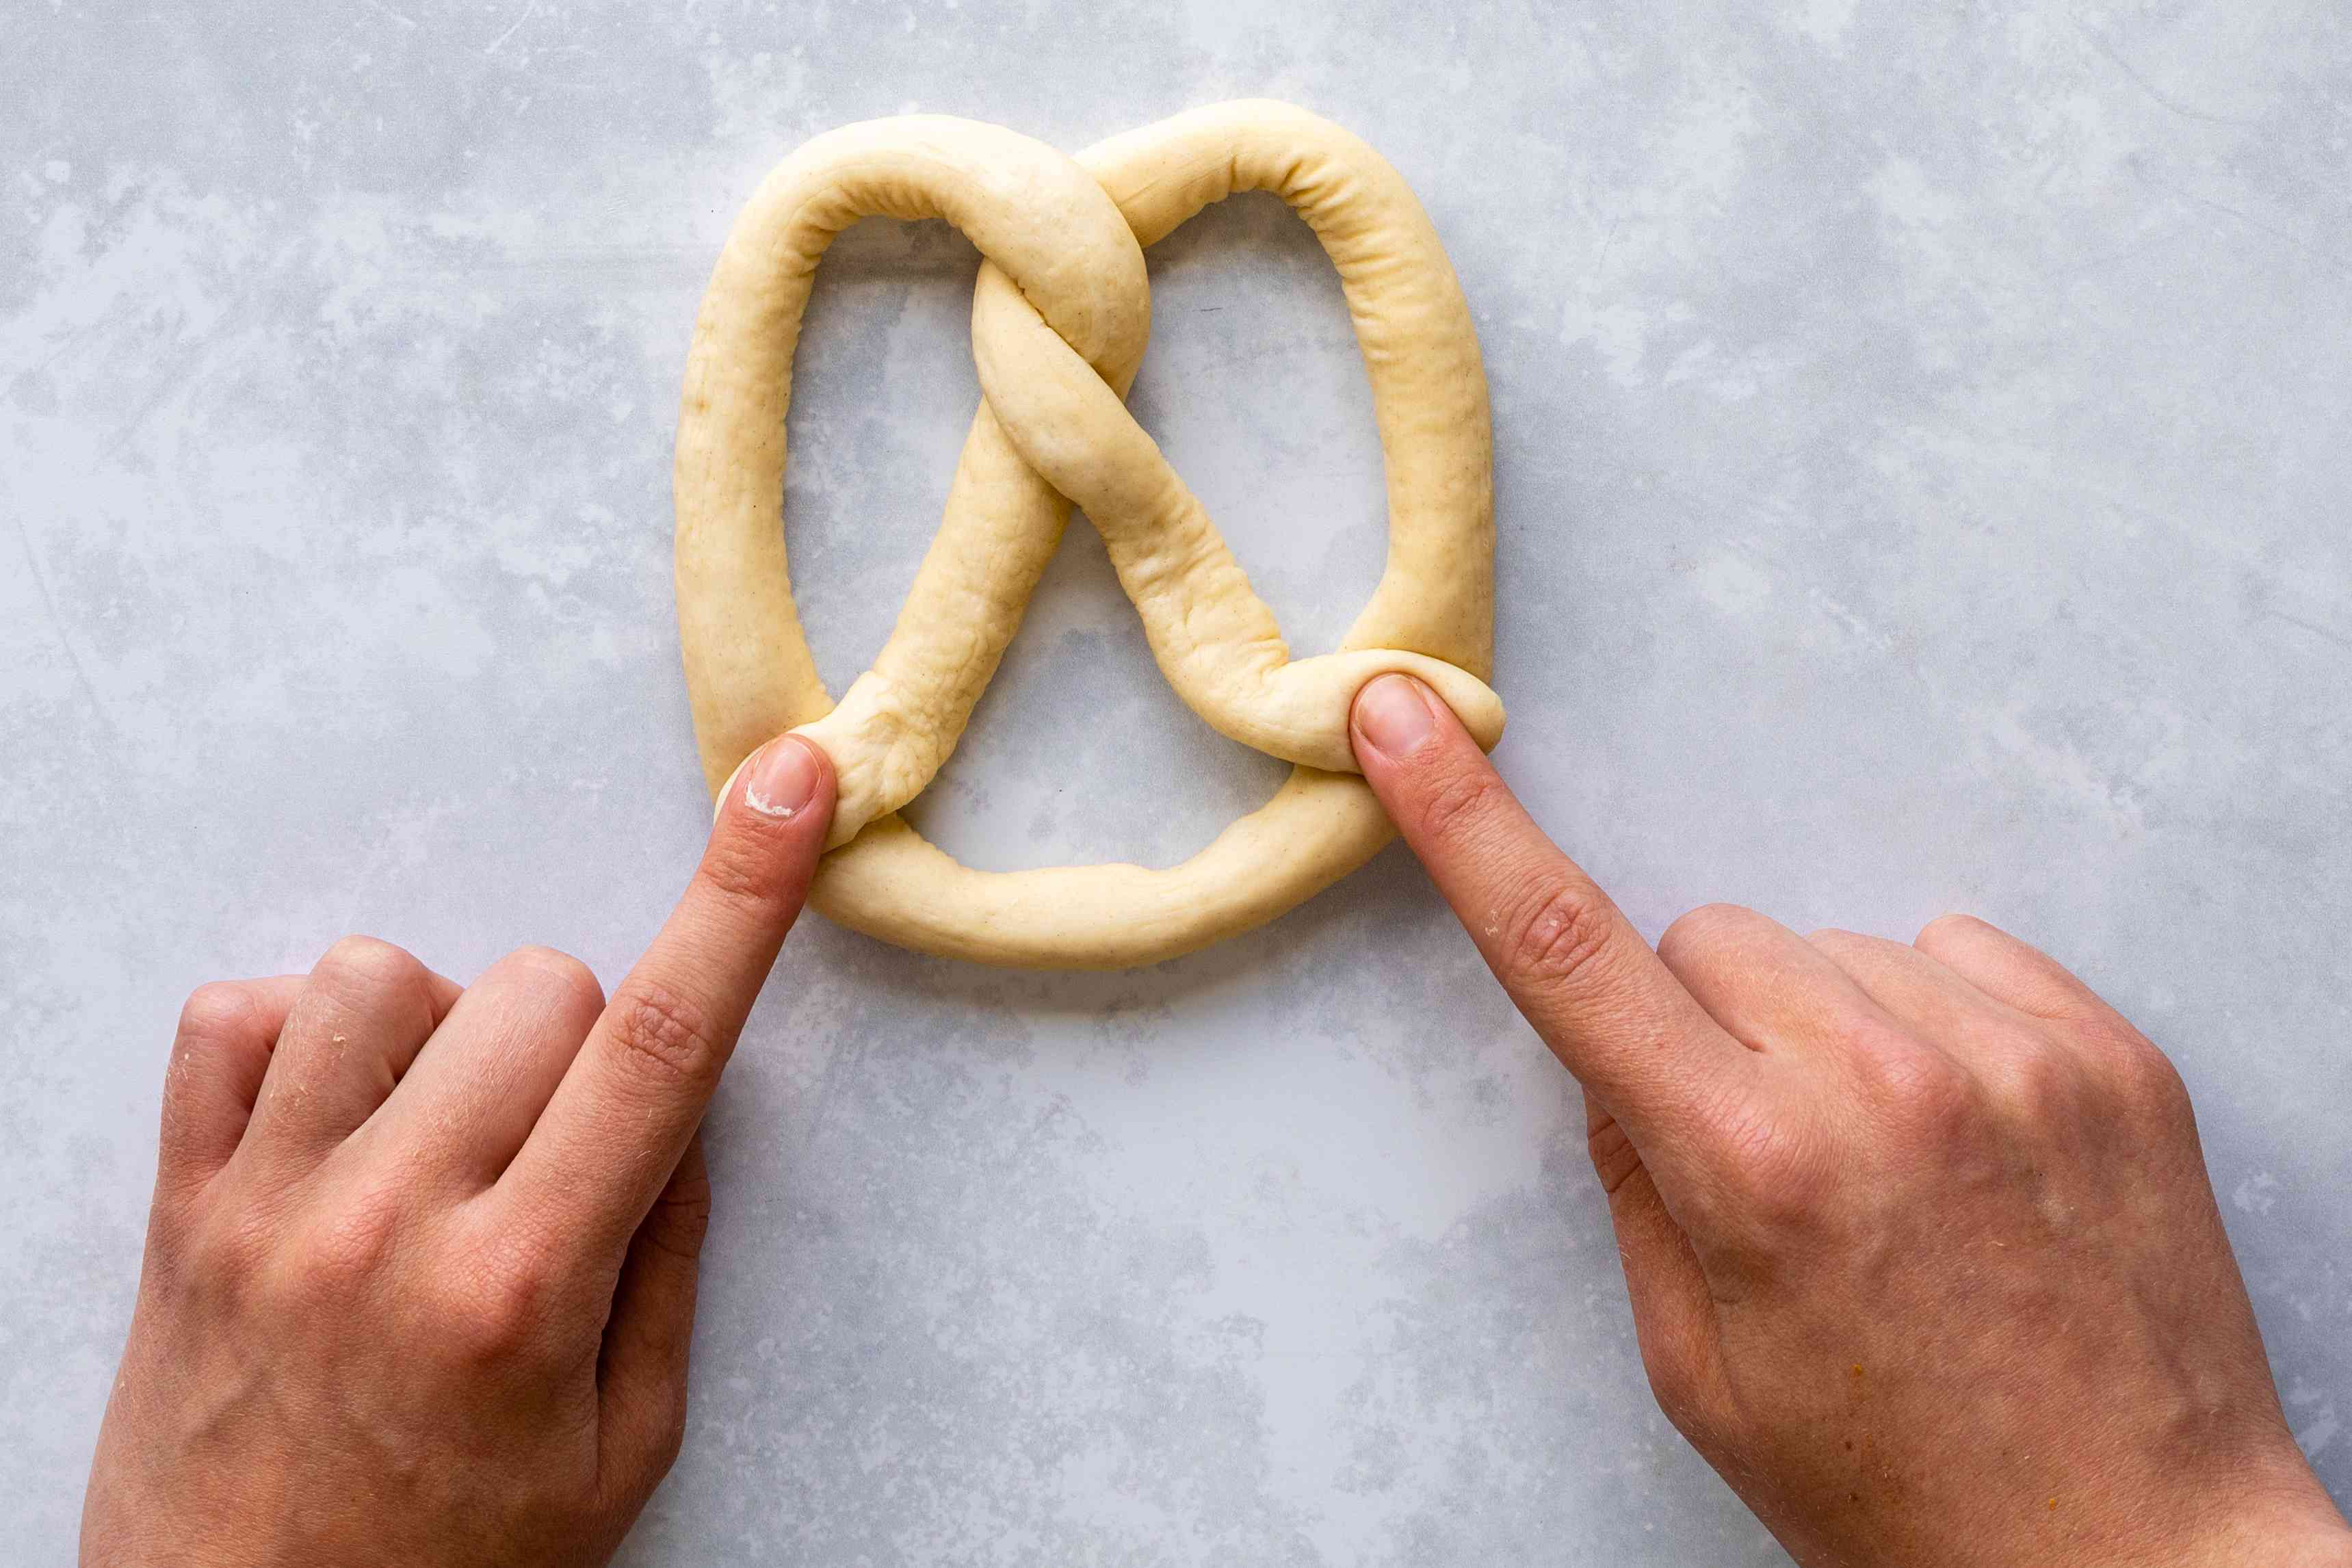 Pressing twisted dough ends to the bottom of the pretzel